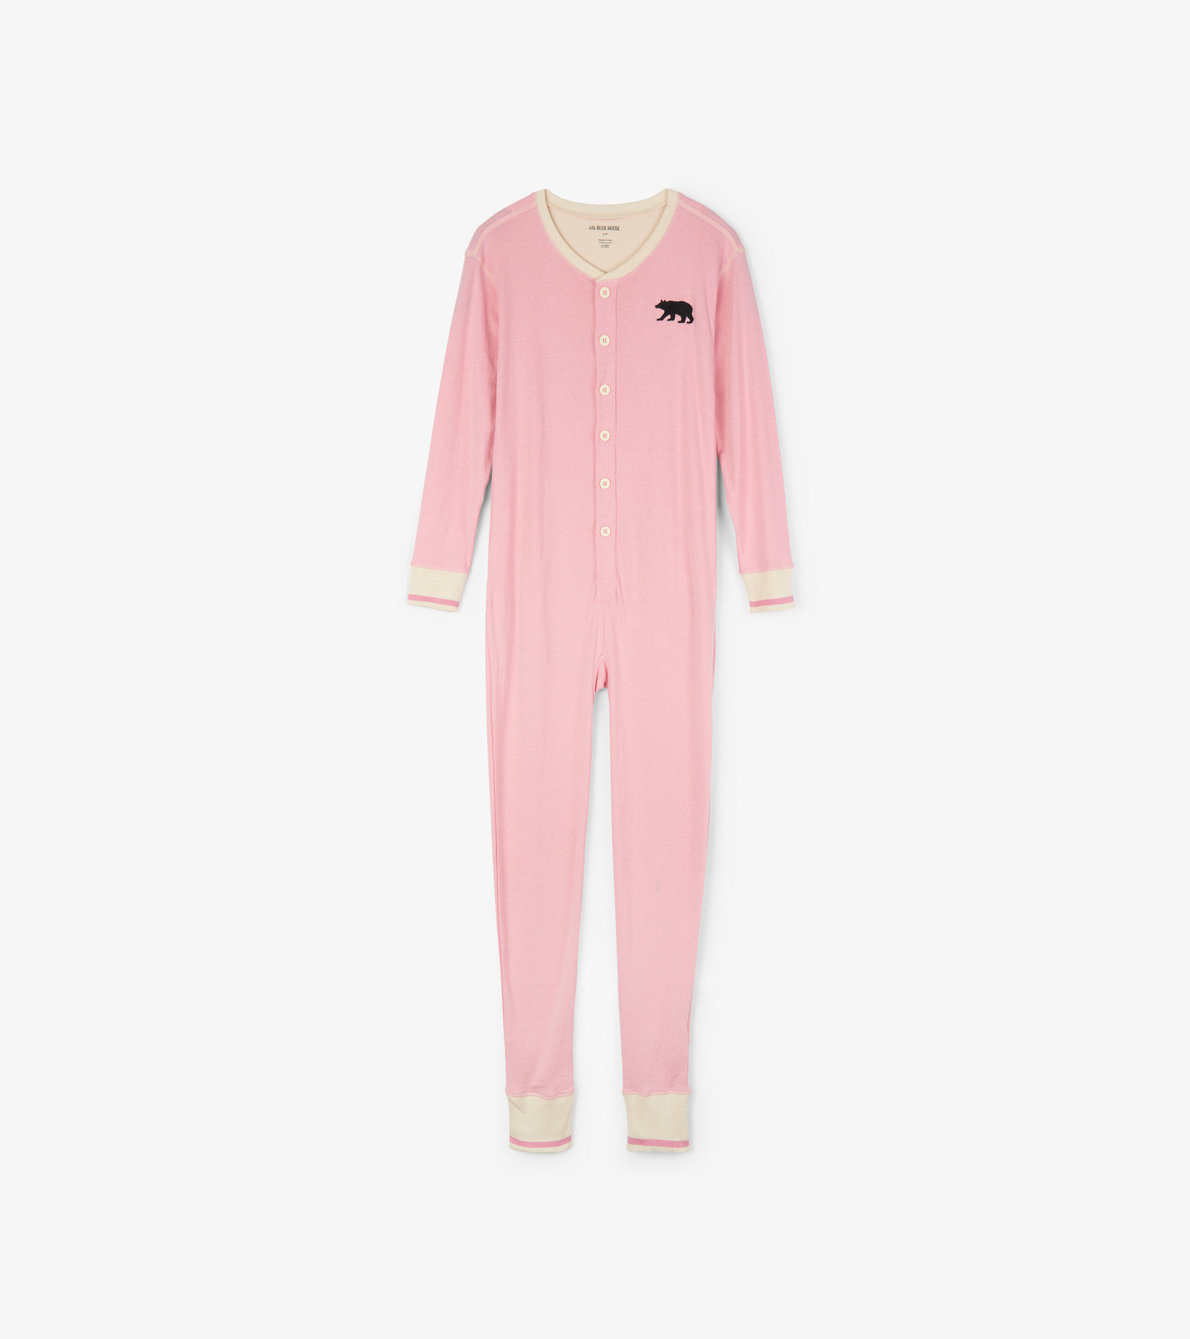 View larger image of Pink Bear Bum Adult Union Suit